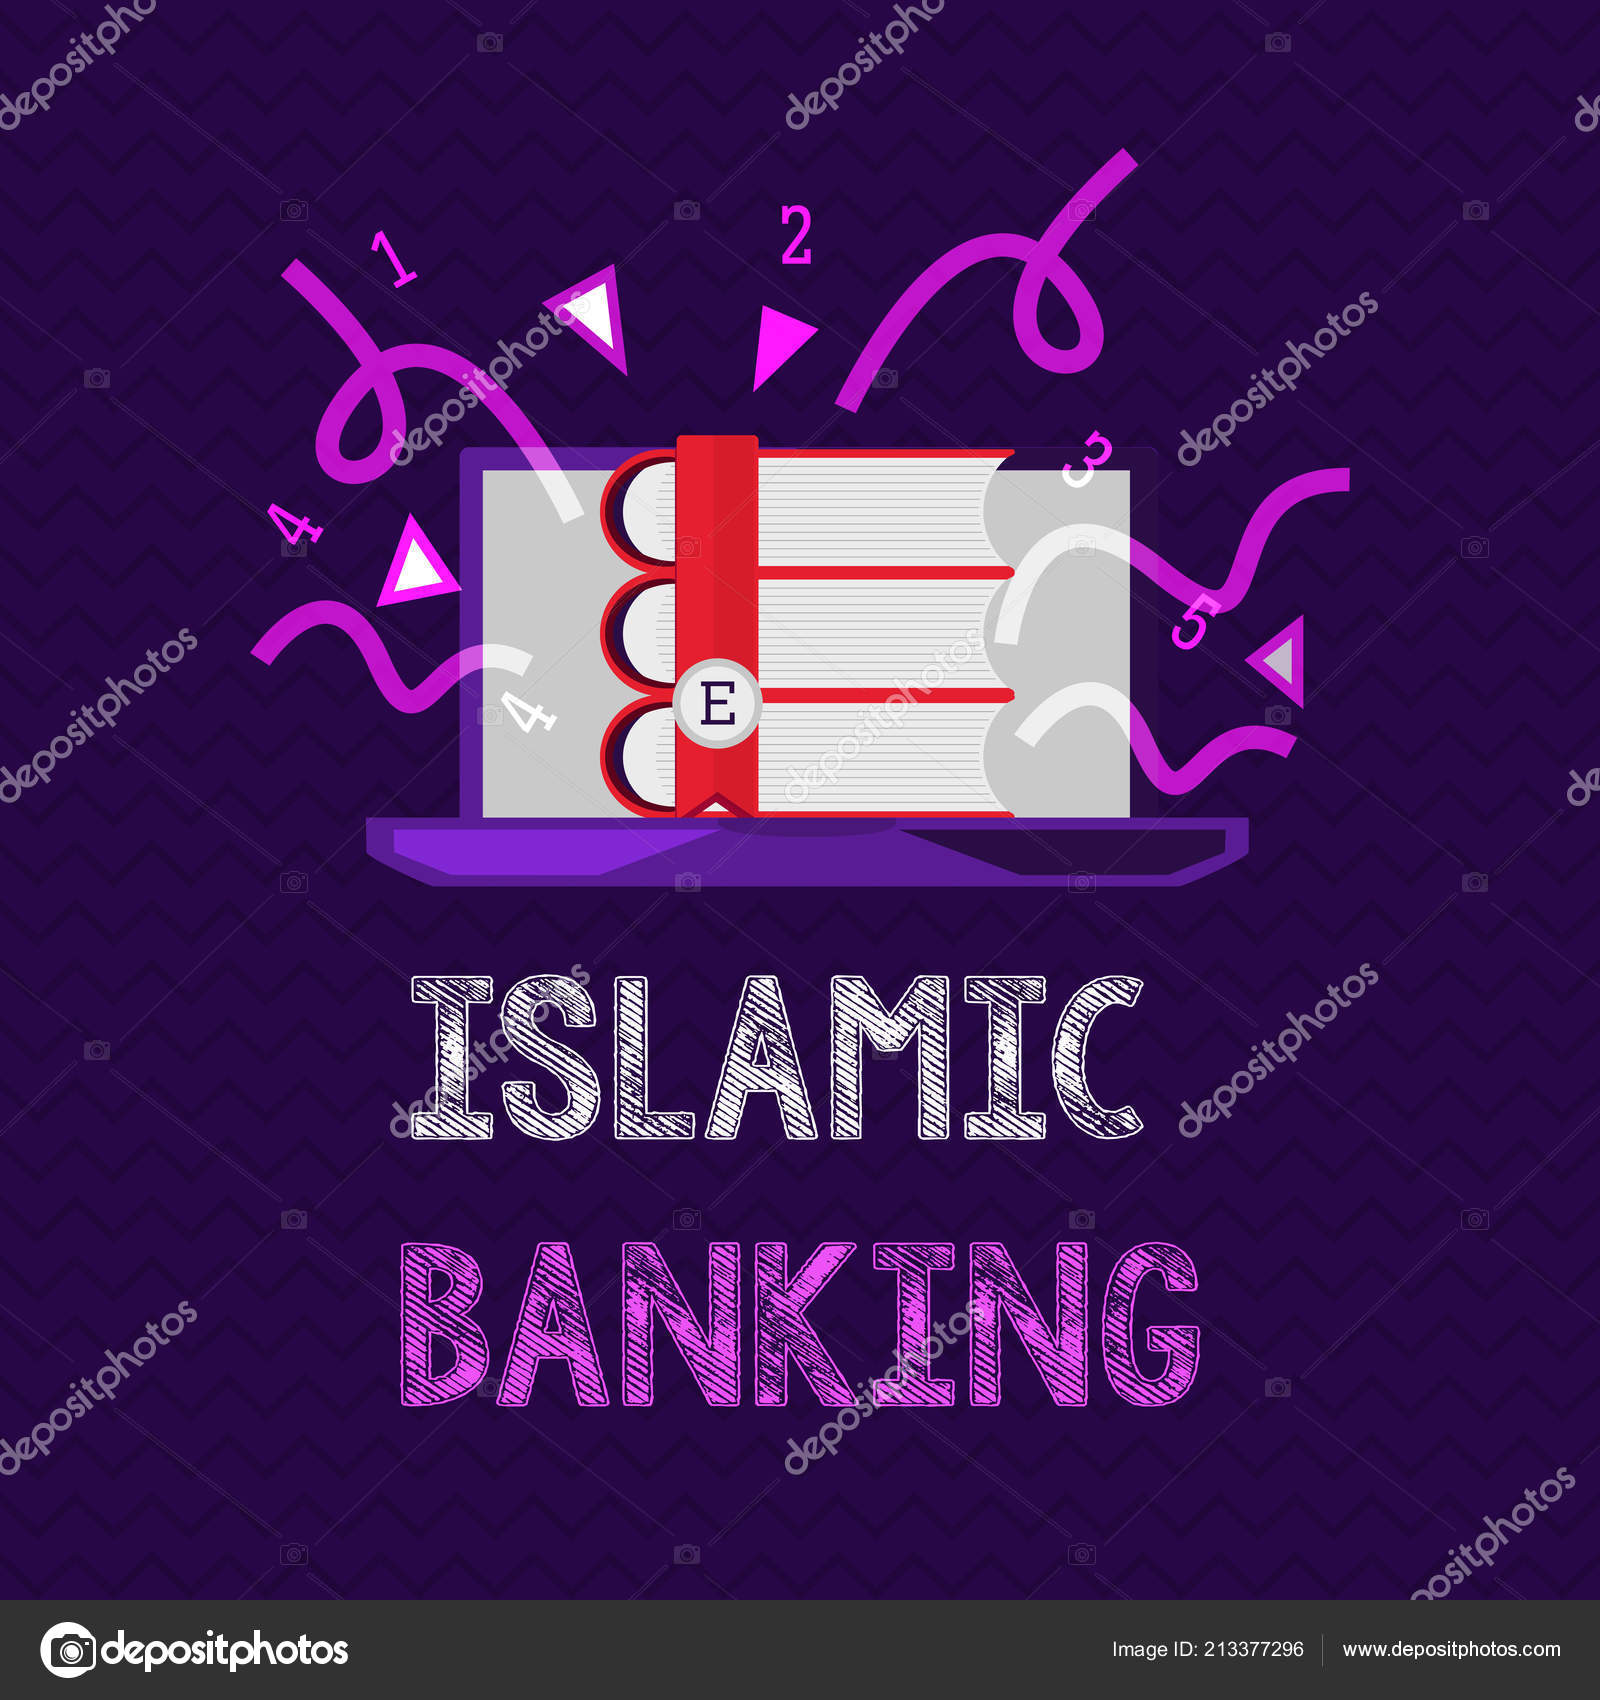 principles of the islamic banking system The enforcement principle - the principle of islamic banking shariah islamic lawin the dinormakan economy meant is to mengkonsistensikan the islamic teachings with thepractice of the banking terkaontaminasi with other systems are generally incompatible with theethics and principles of islam.